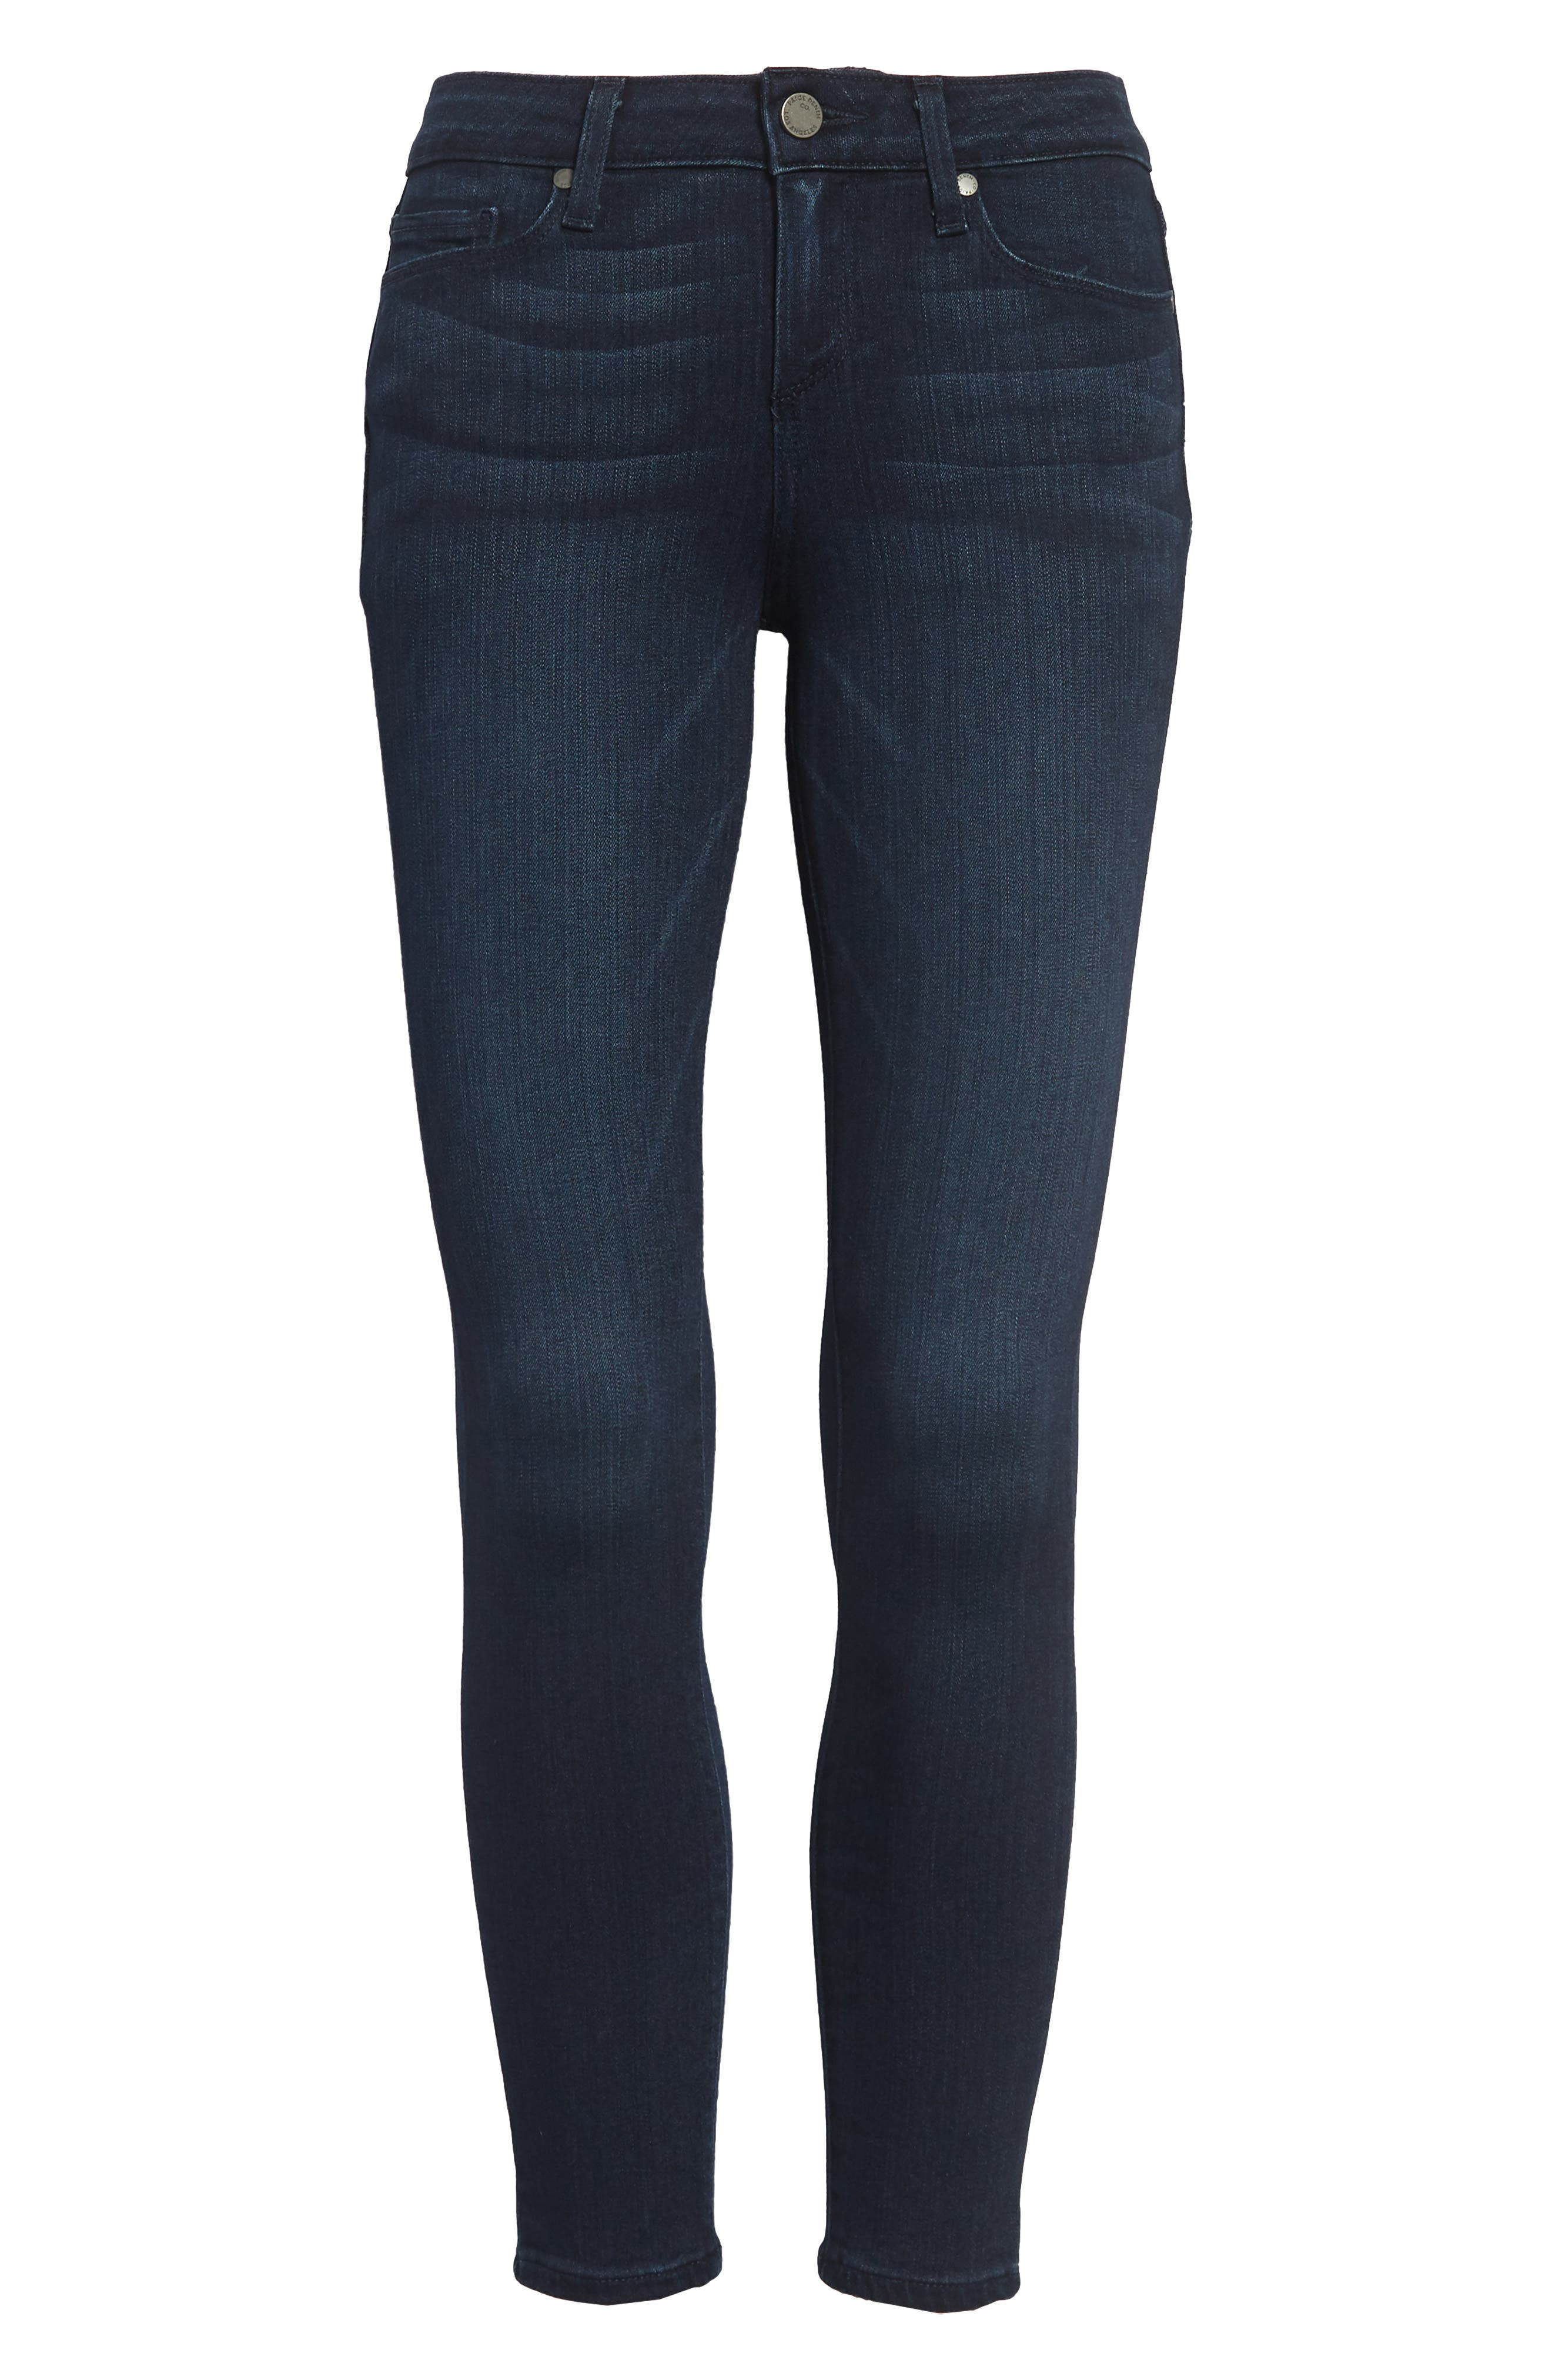 PAIGE Transcend - Verdugo Crop Skinny Jeans, Main, color, MIDLAKE